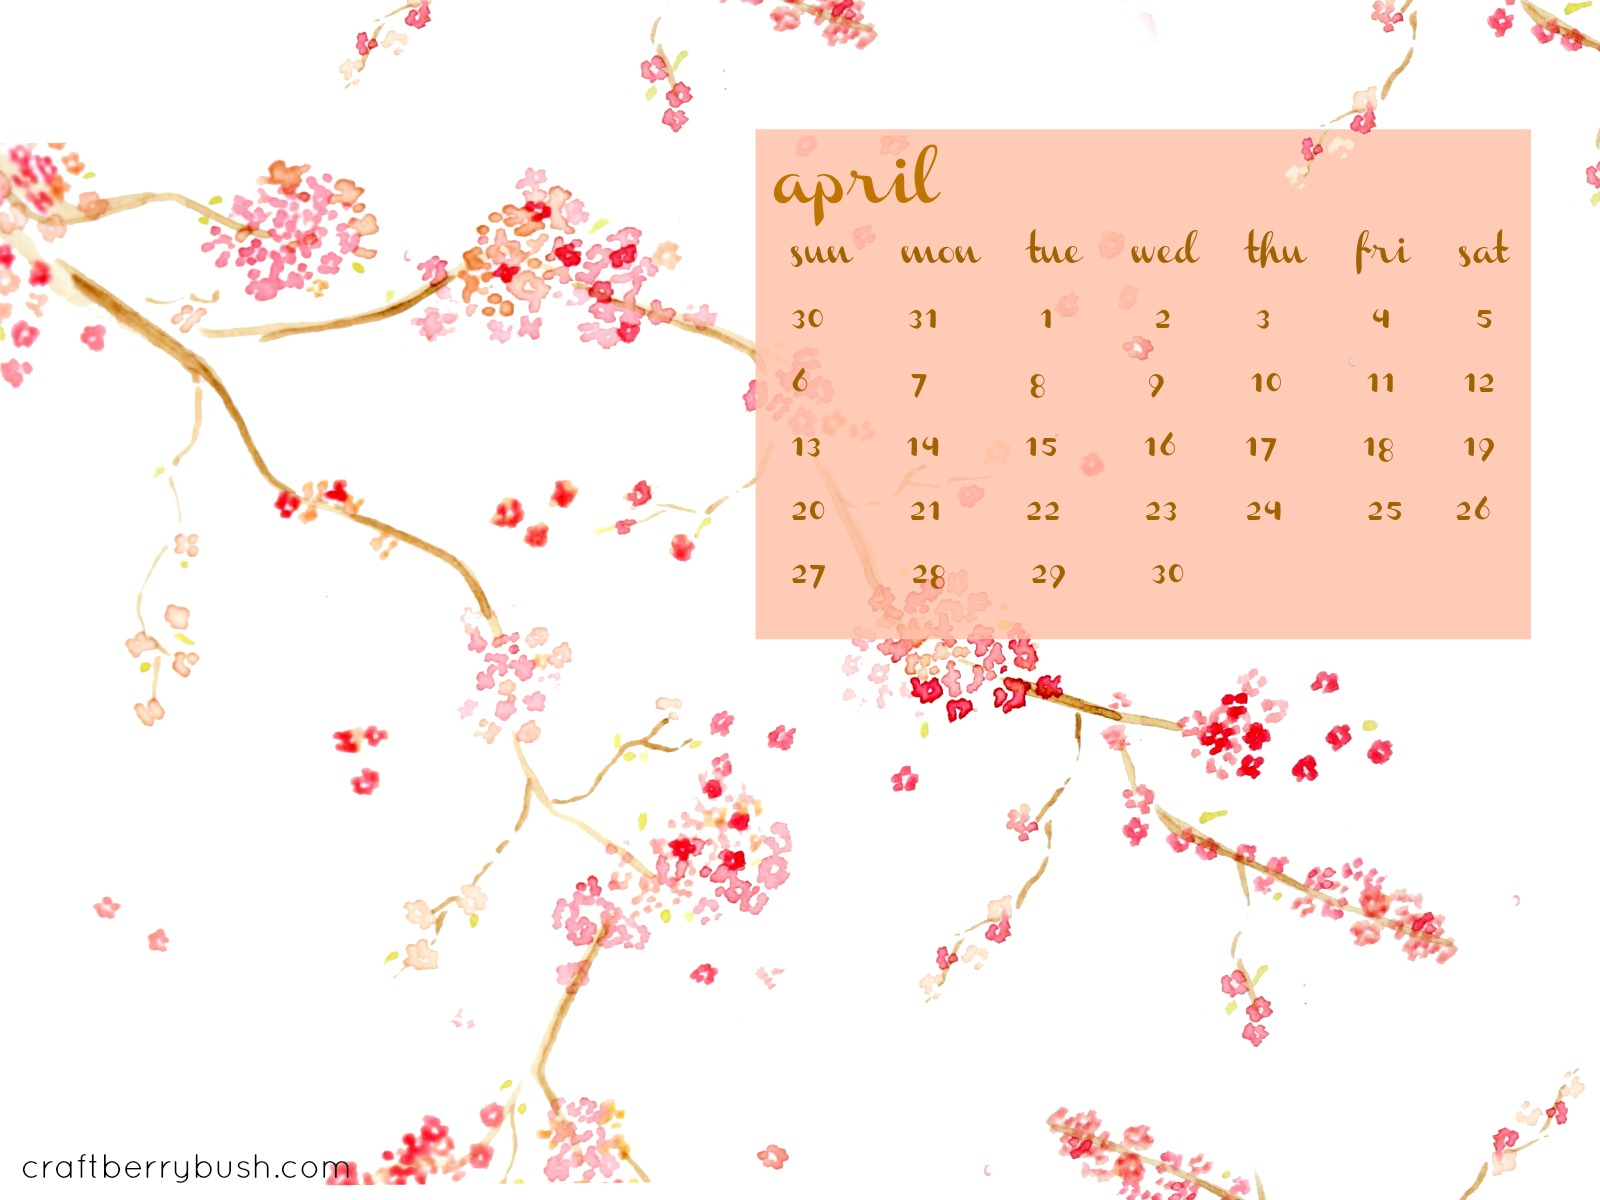 March April May 2014 Calendar April's free desktop calendar